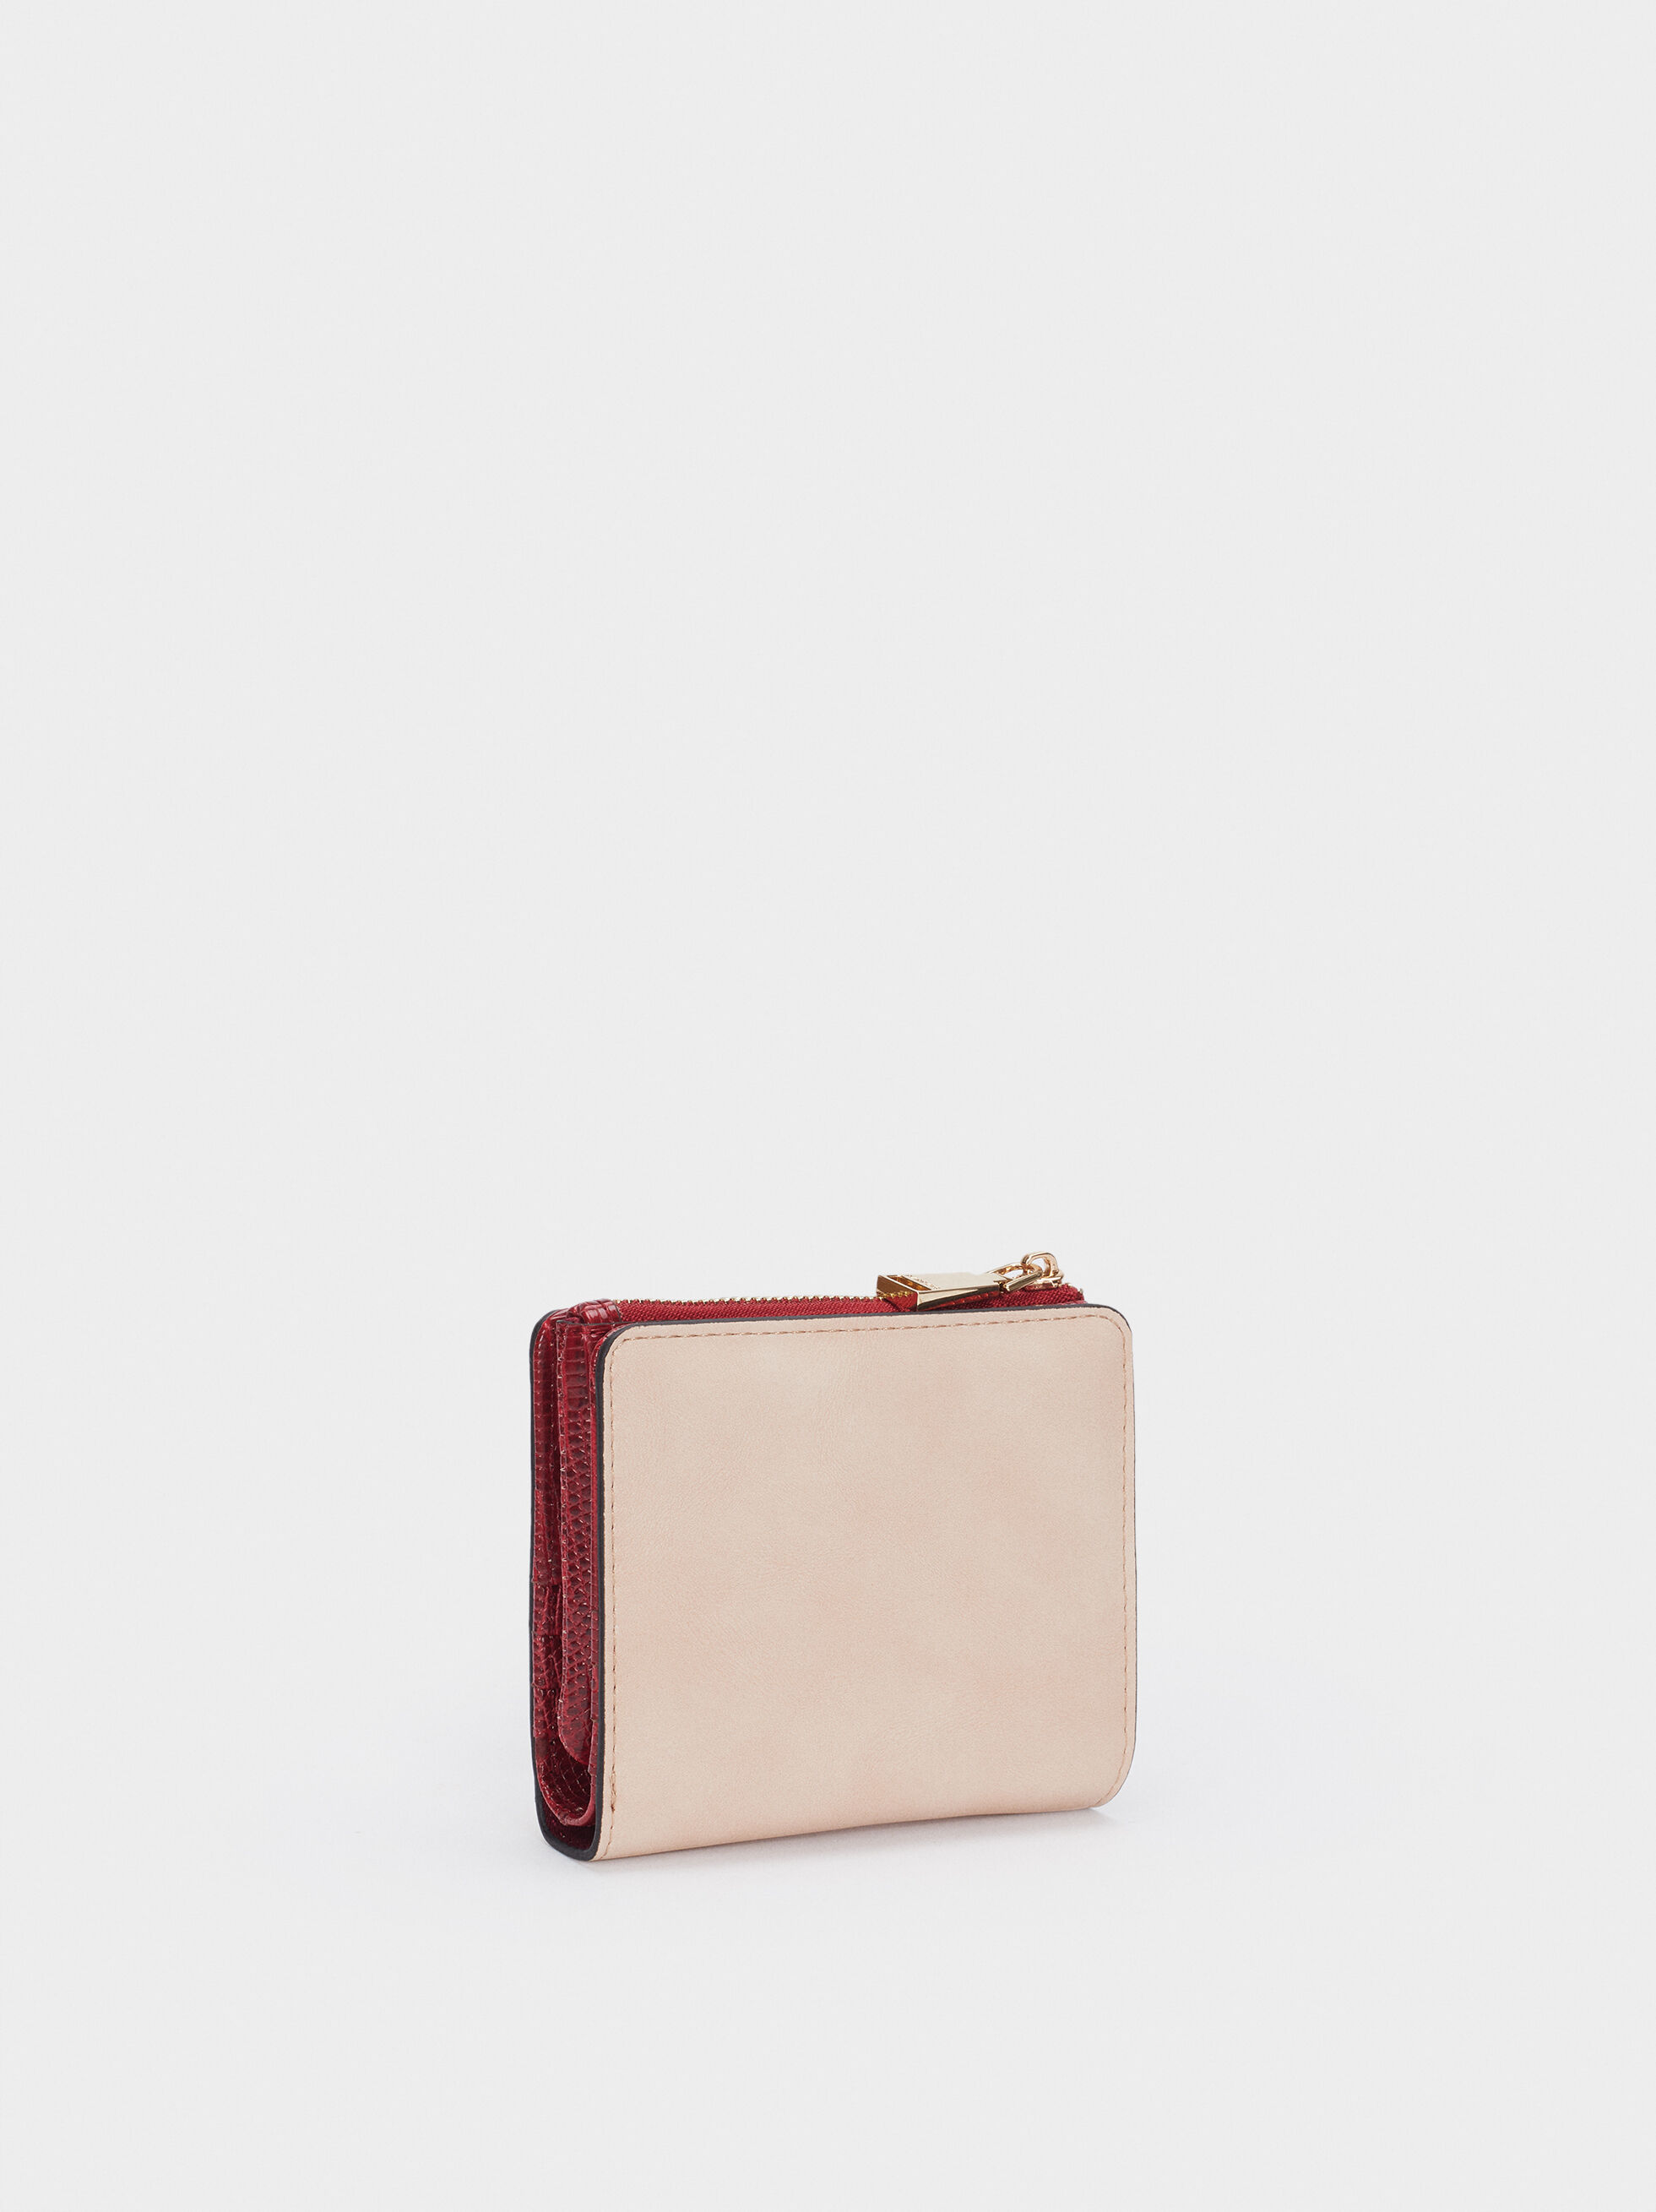 Zipped Purse, Beige, hi-res